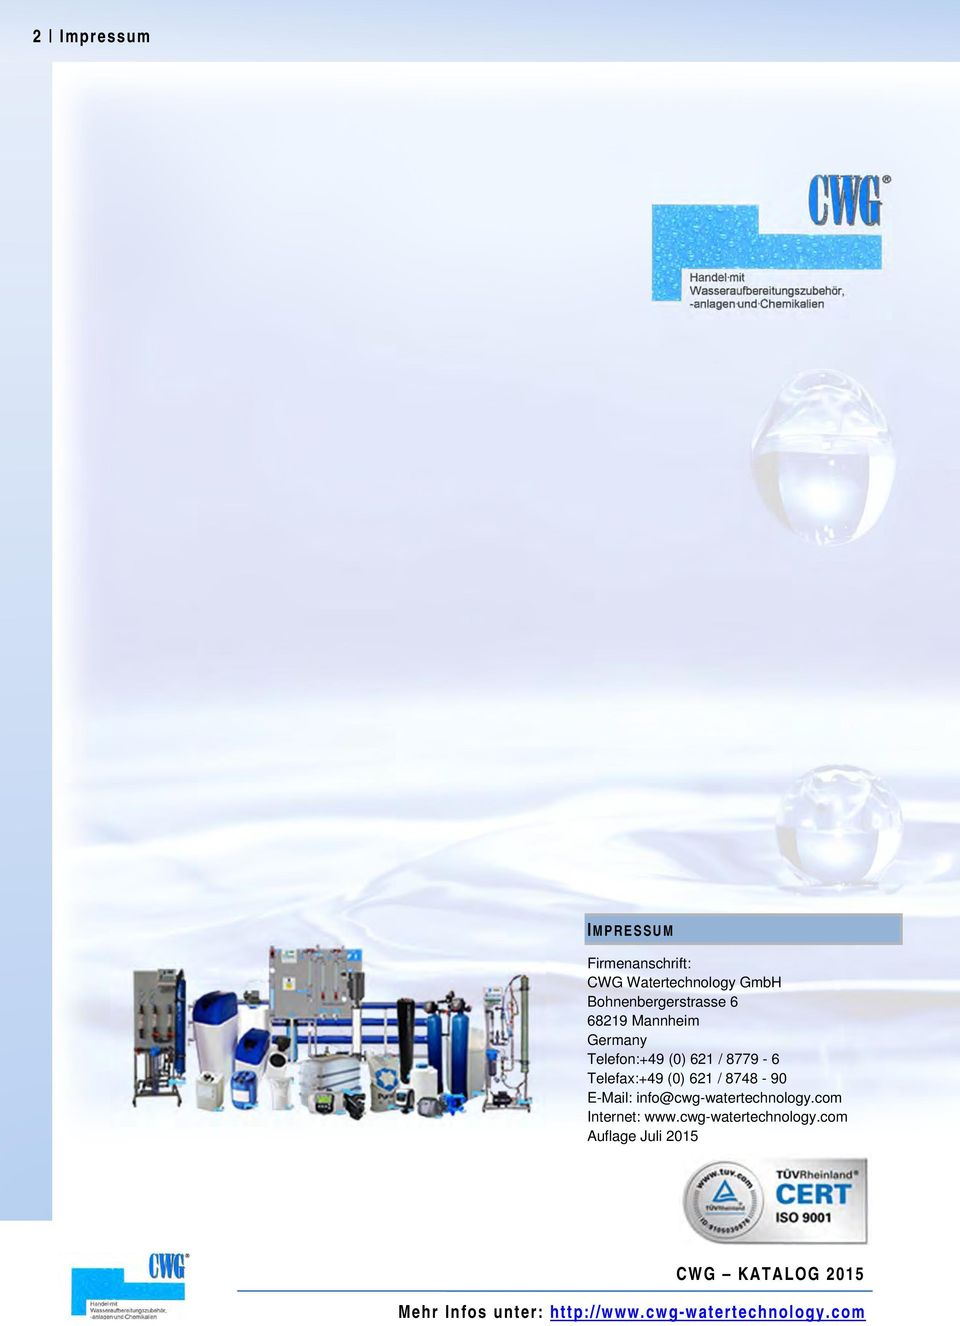 8748-90 E-Mail: info@cwg-watertechnology.